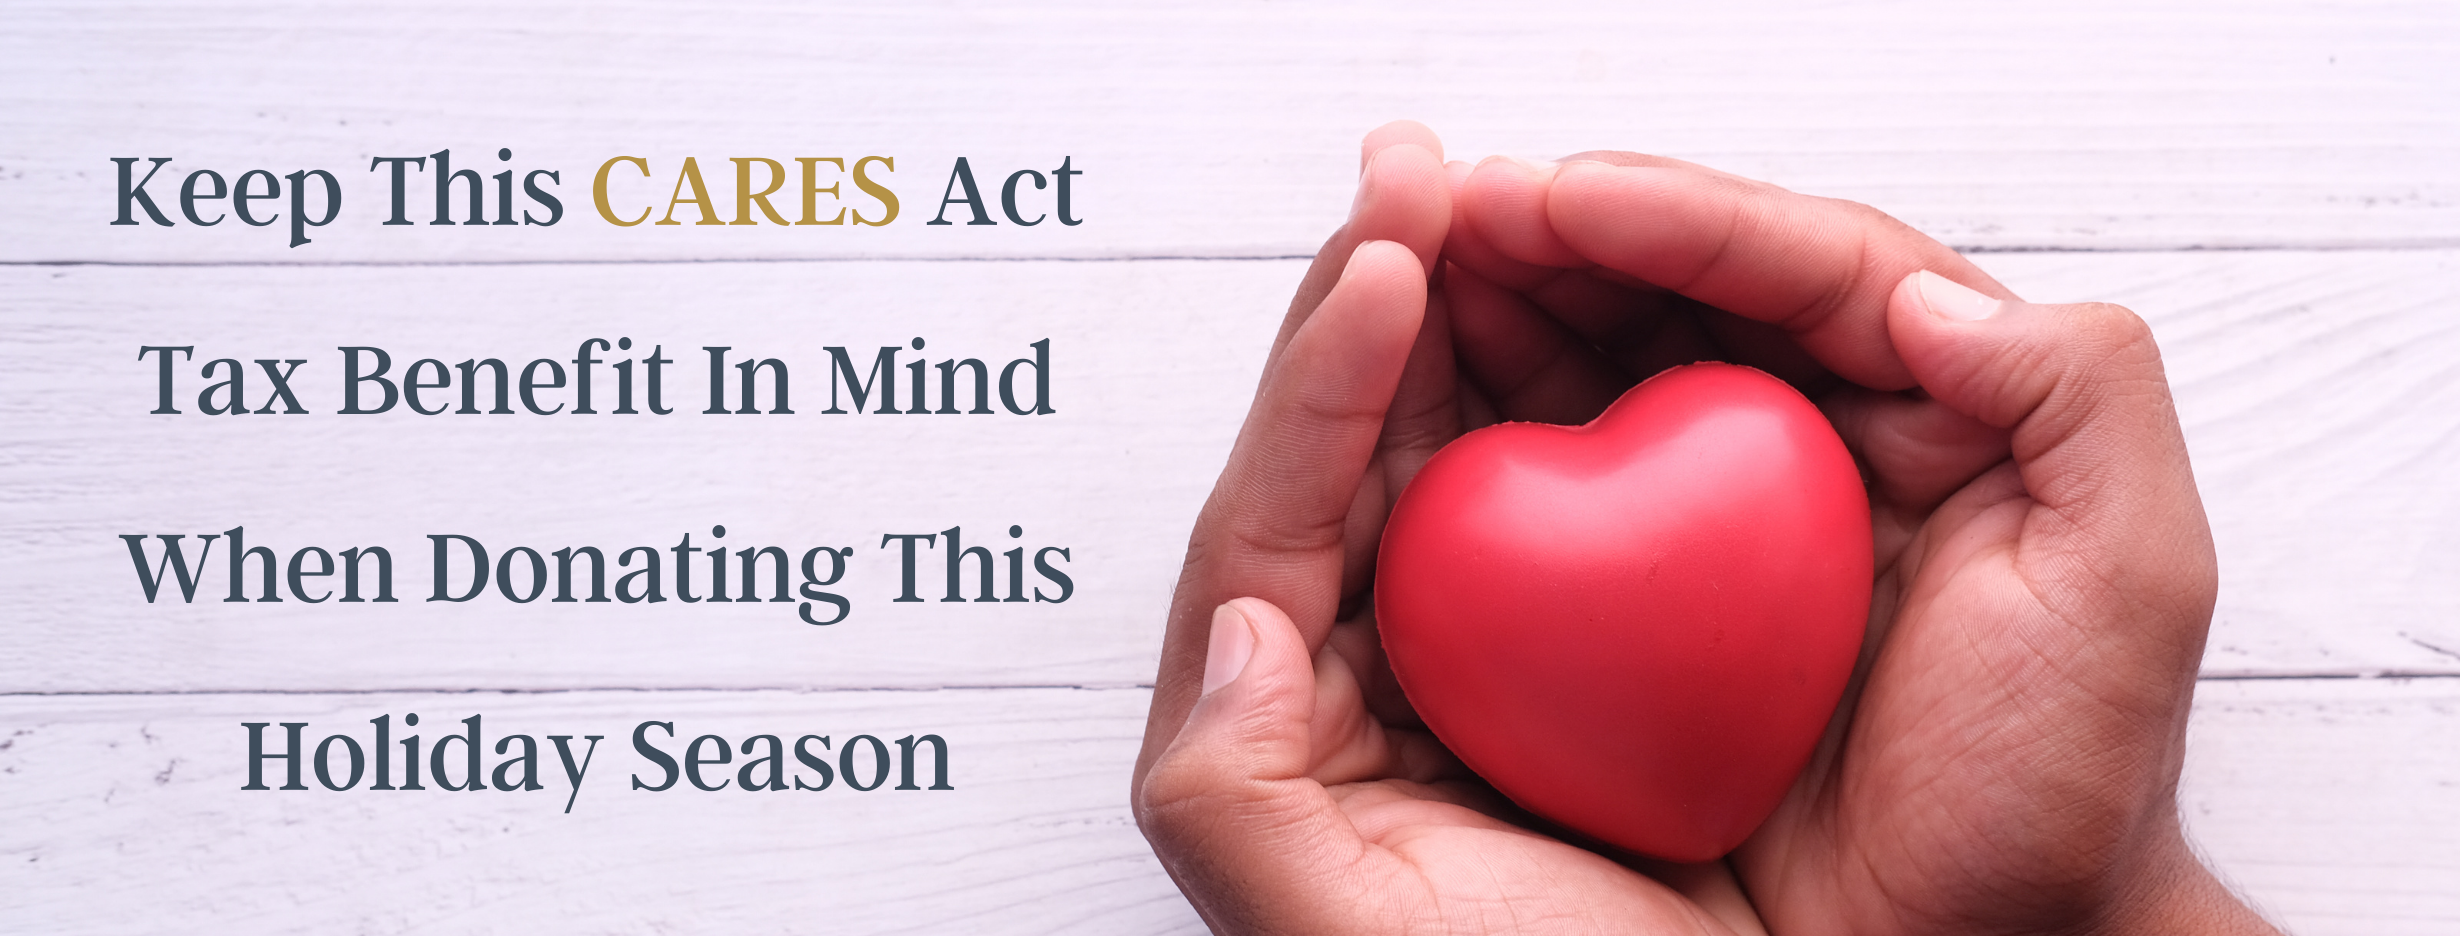 Donating to Your Favorite Charity This Holiday Season? Keep This CARES Act Tax Benefit in Mind Thumbnail